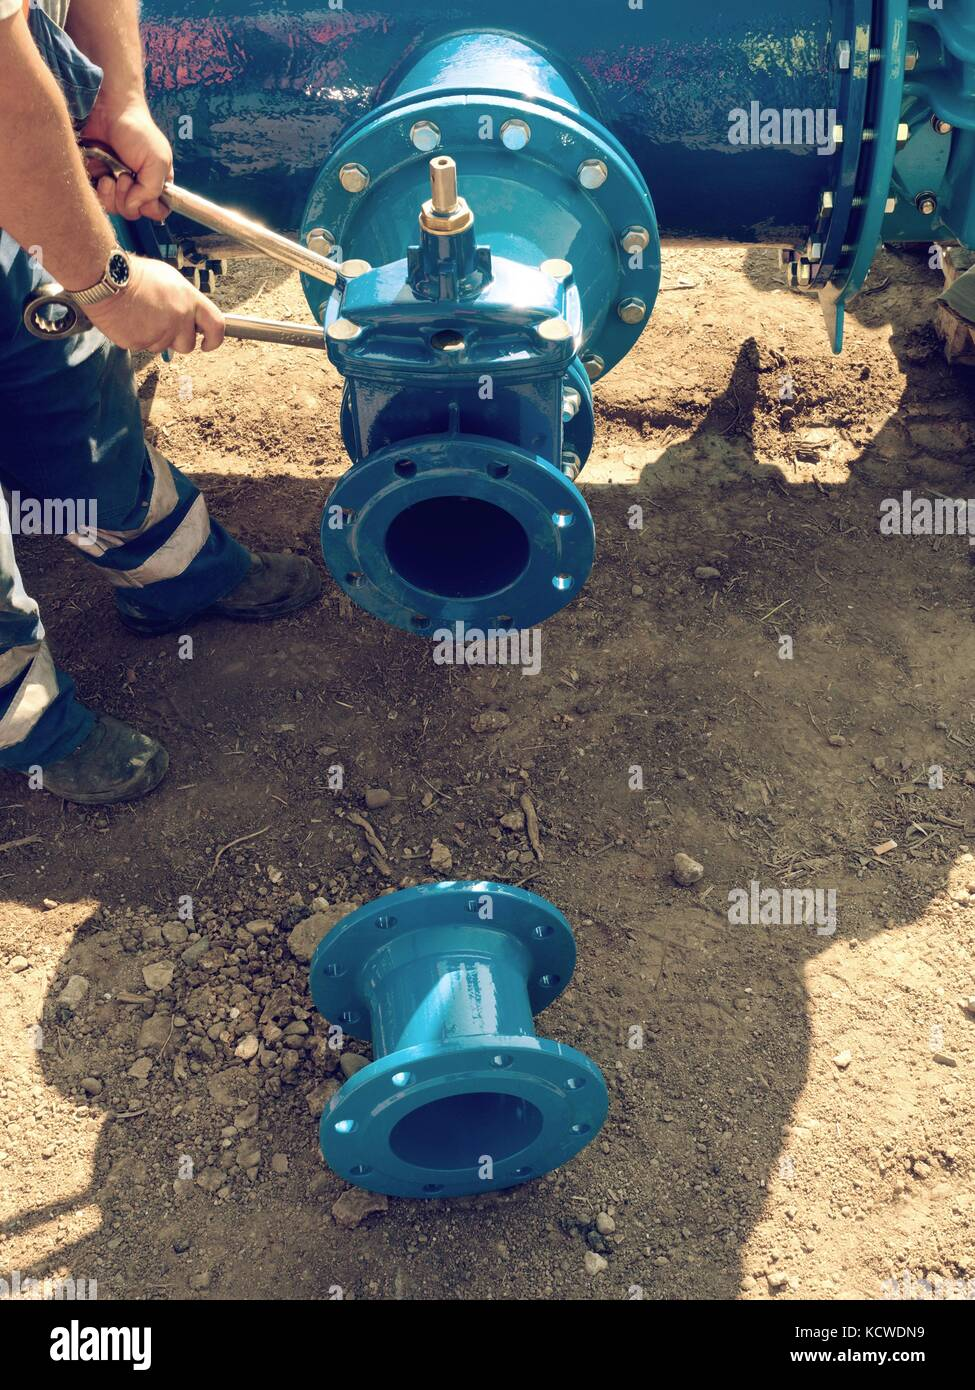 Worker hands with tools screwing  nuts on new dring water piping.   Piping with new Gate valves and reduction member. - Stock Image